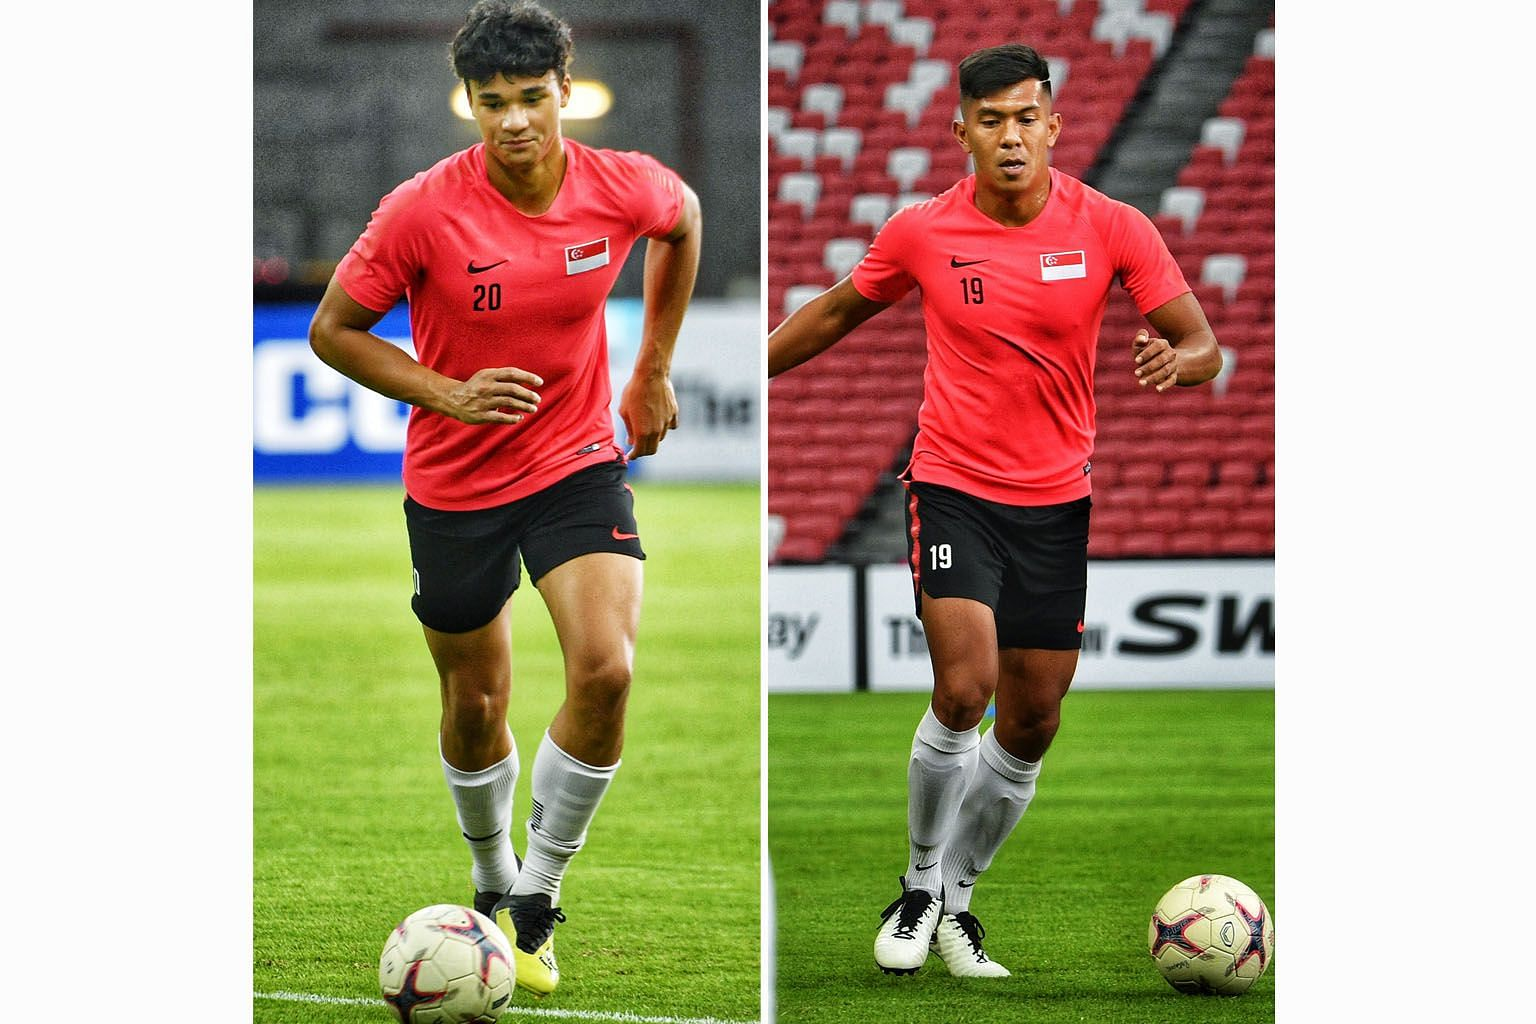 Singapore need goals against Timor-Leste tonight and their line-up will feature both Ikhsan Fandi (left) and Khairul Amri up front.